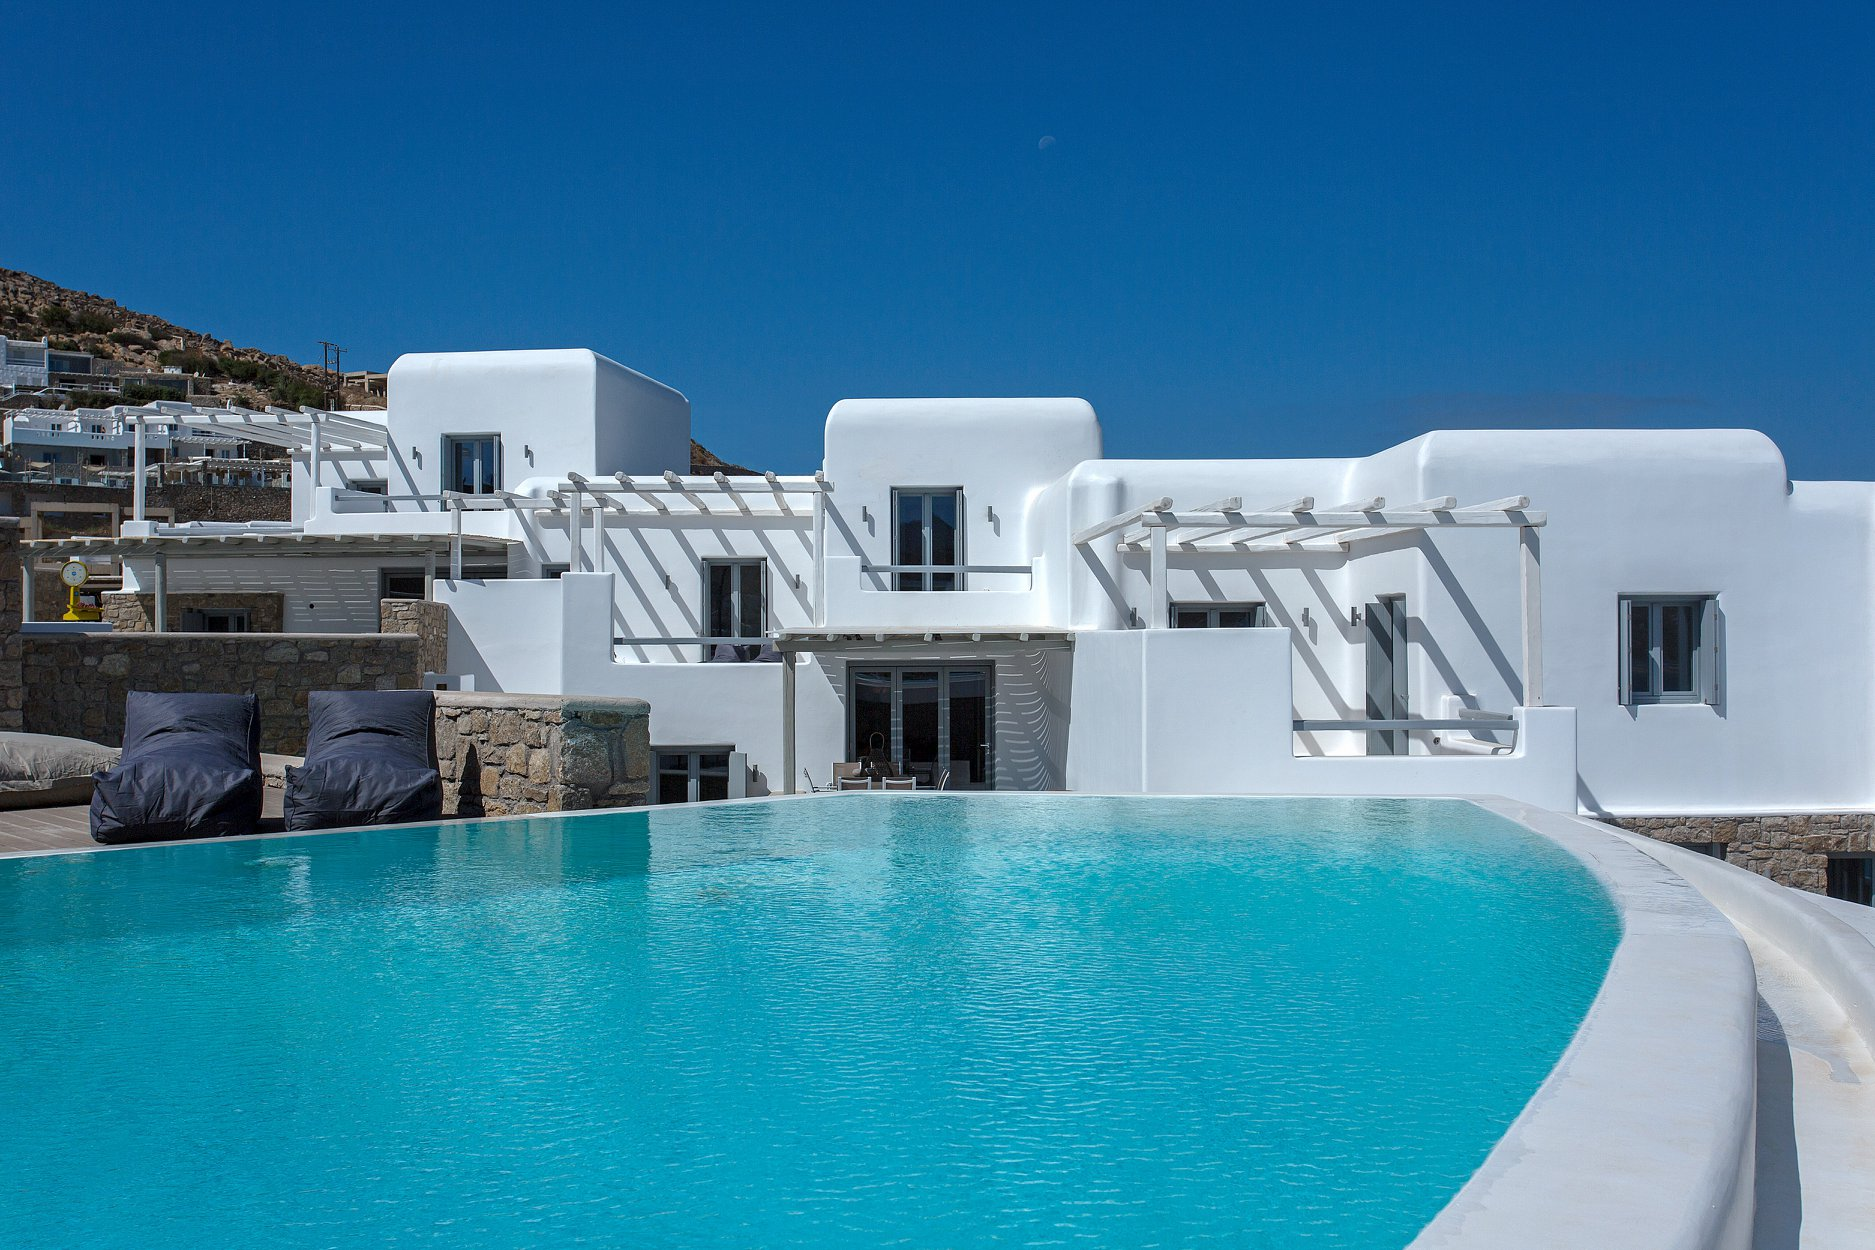 Fantastic 4 bedroom villa with private pool